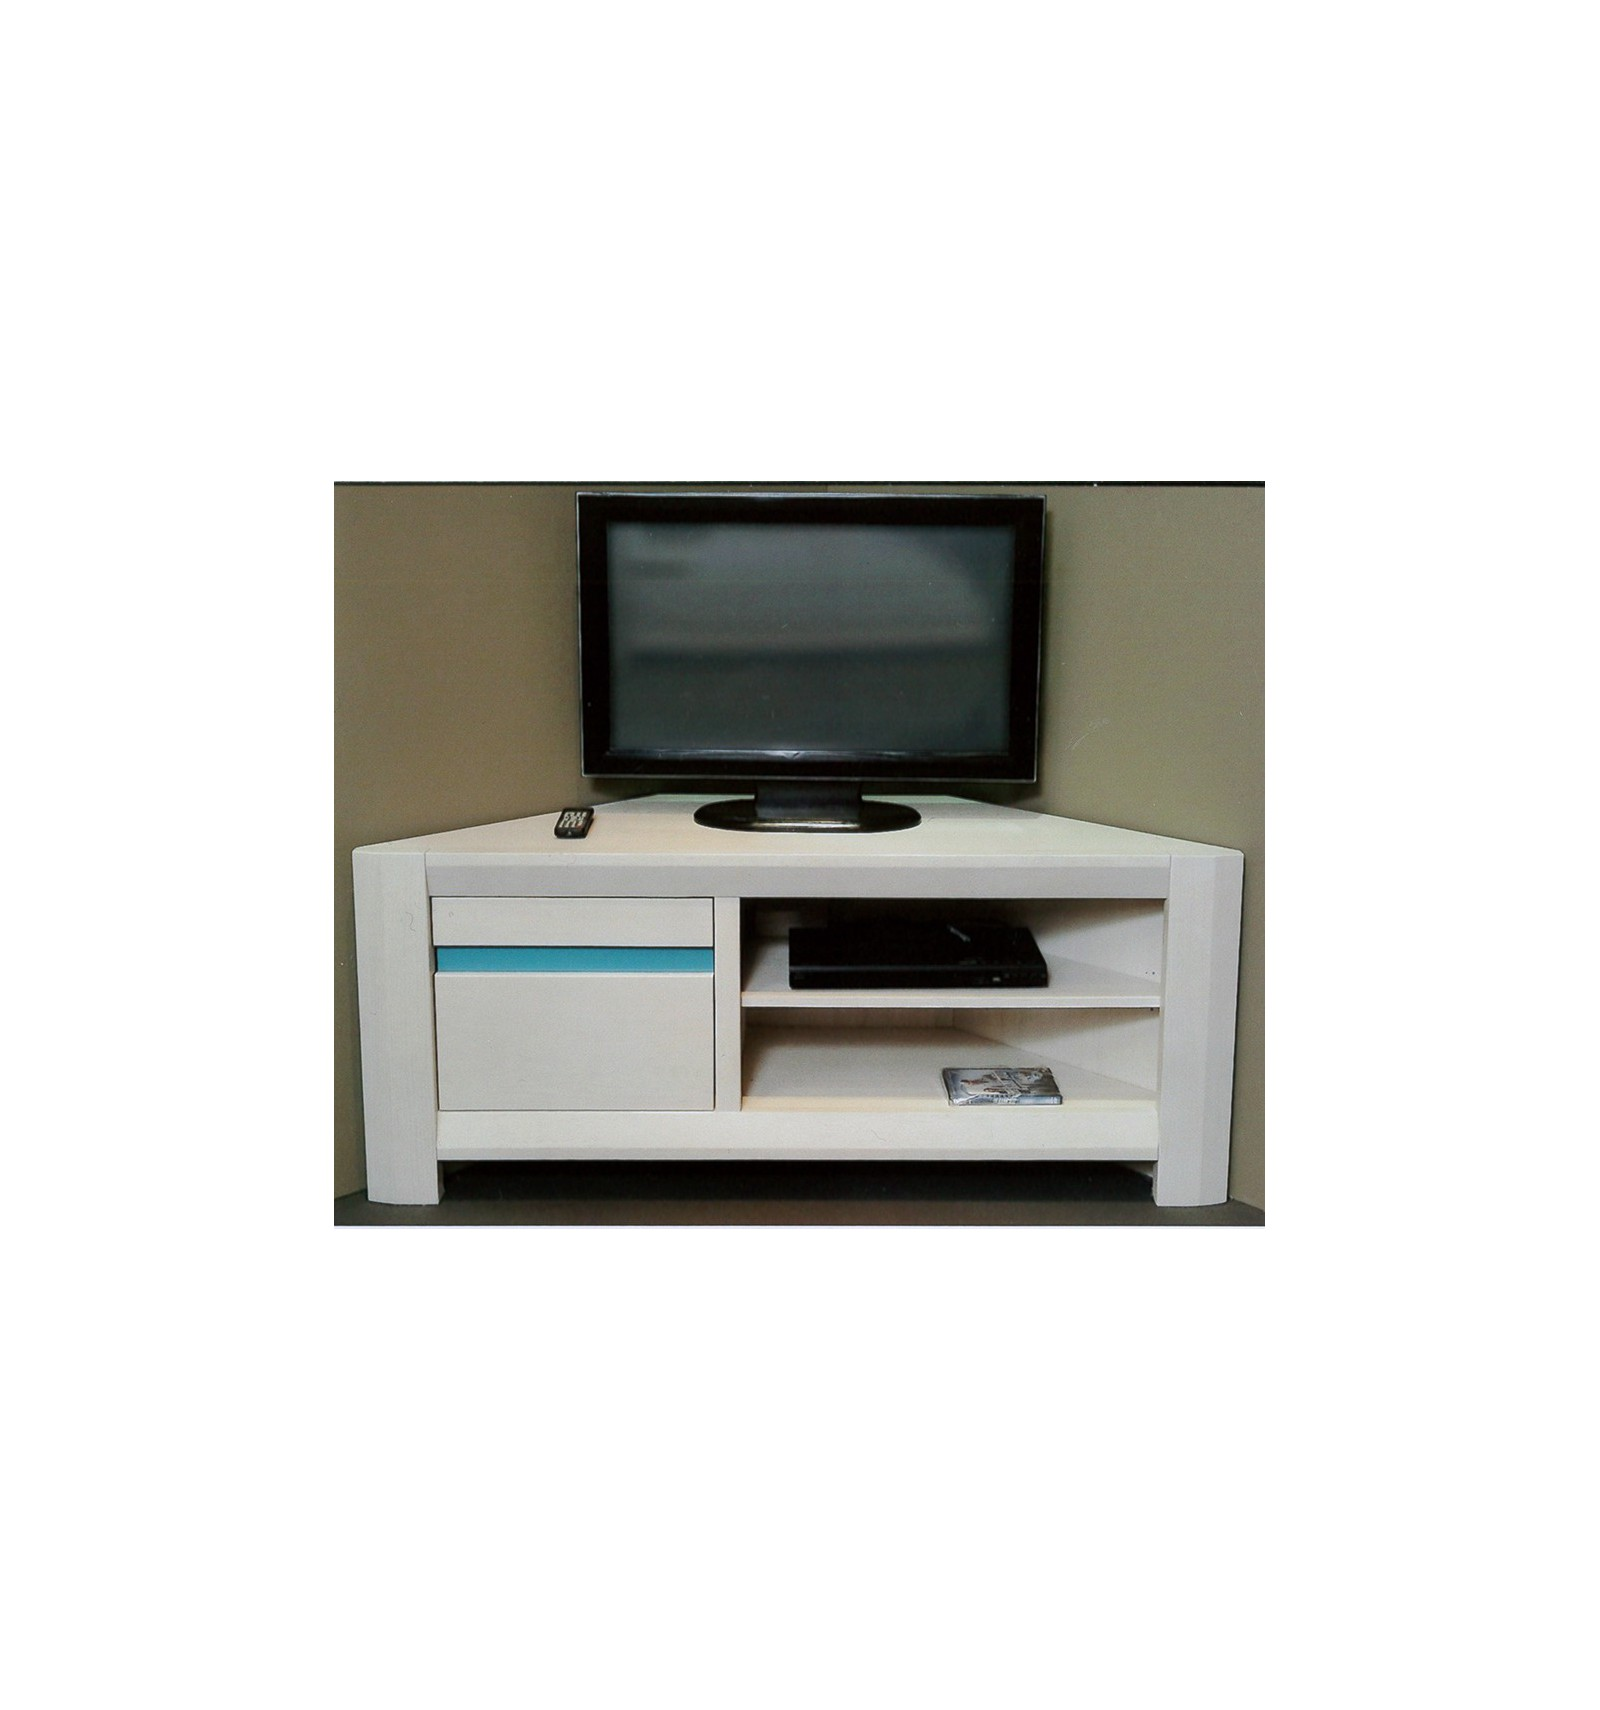 Meuble Tv D Angle Blanc Sellingstg Com # Norstone Meuble Tv